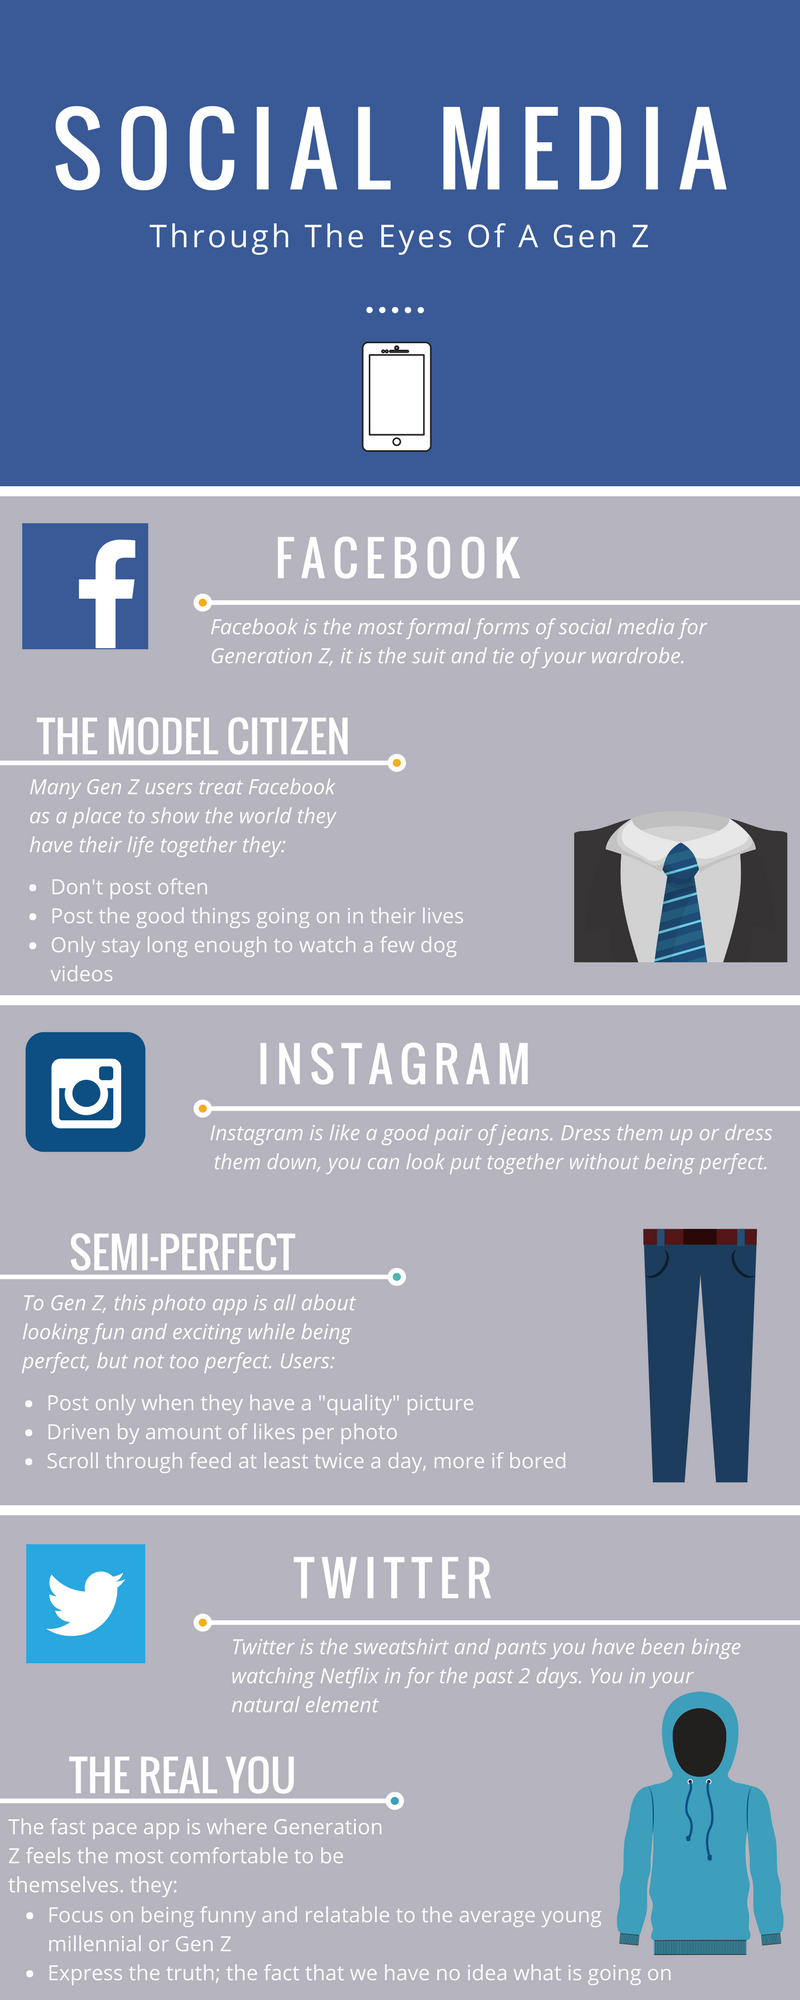 Social media through the eyes of a gen z